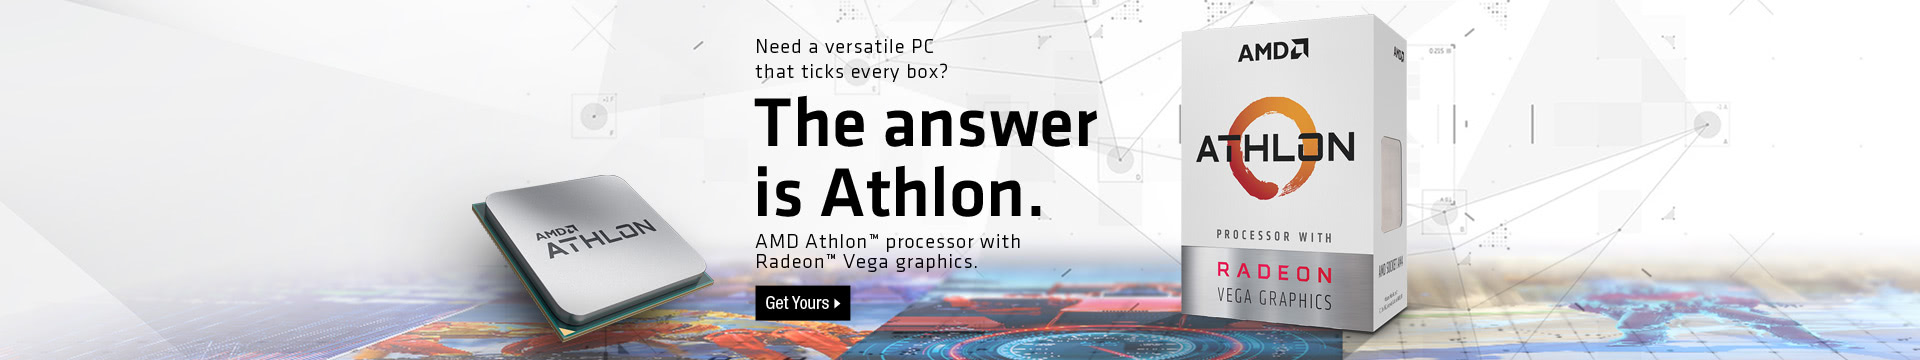 need a versatile PC that ticks every box?